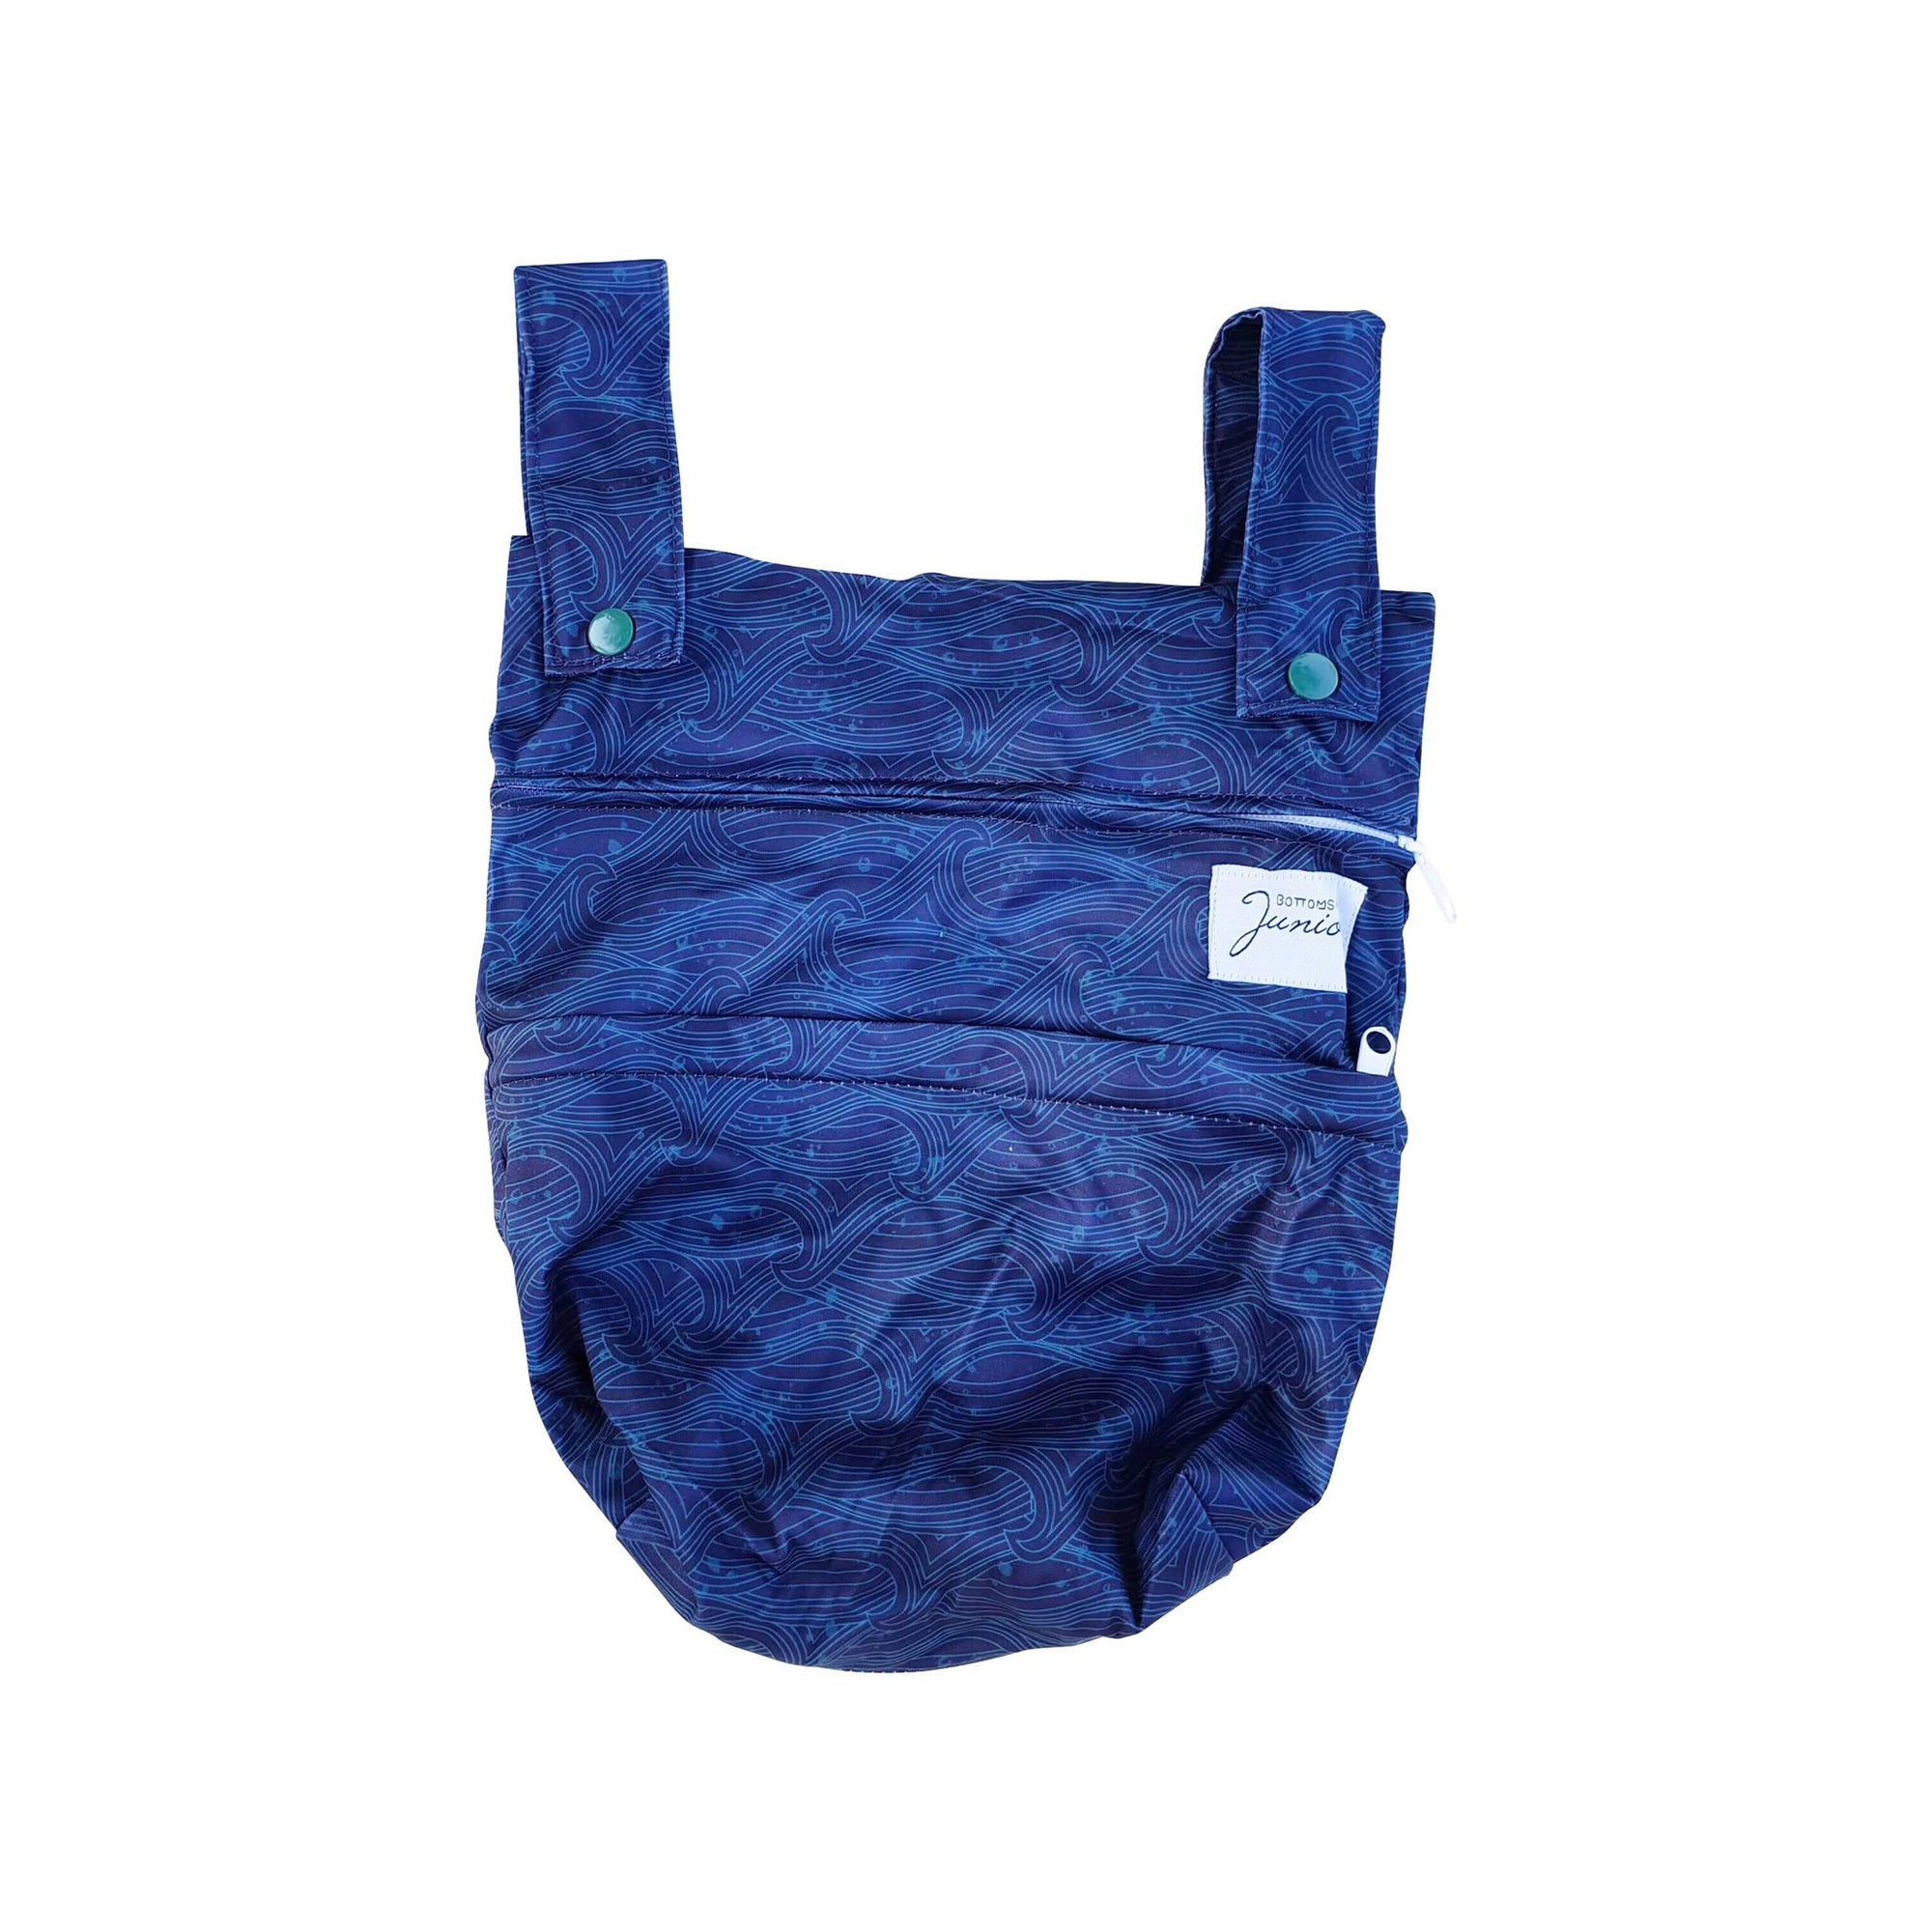 Junior Tribe Co -Mini Wet bags